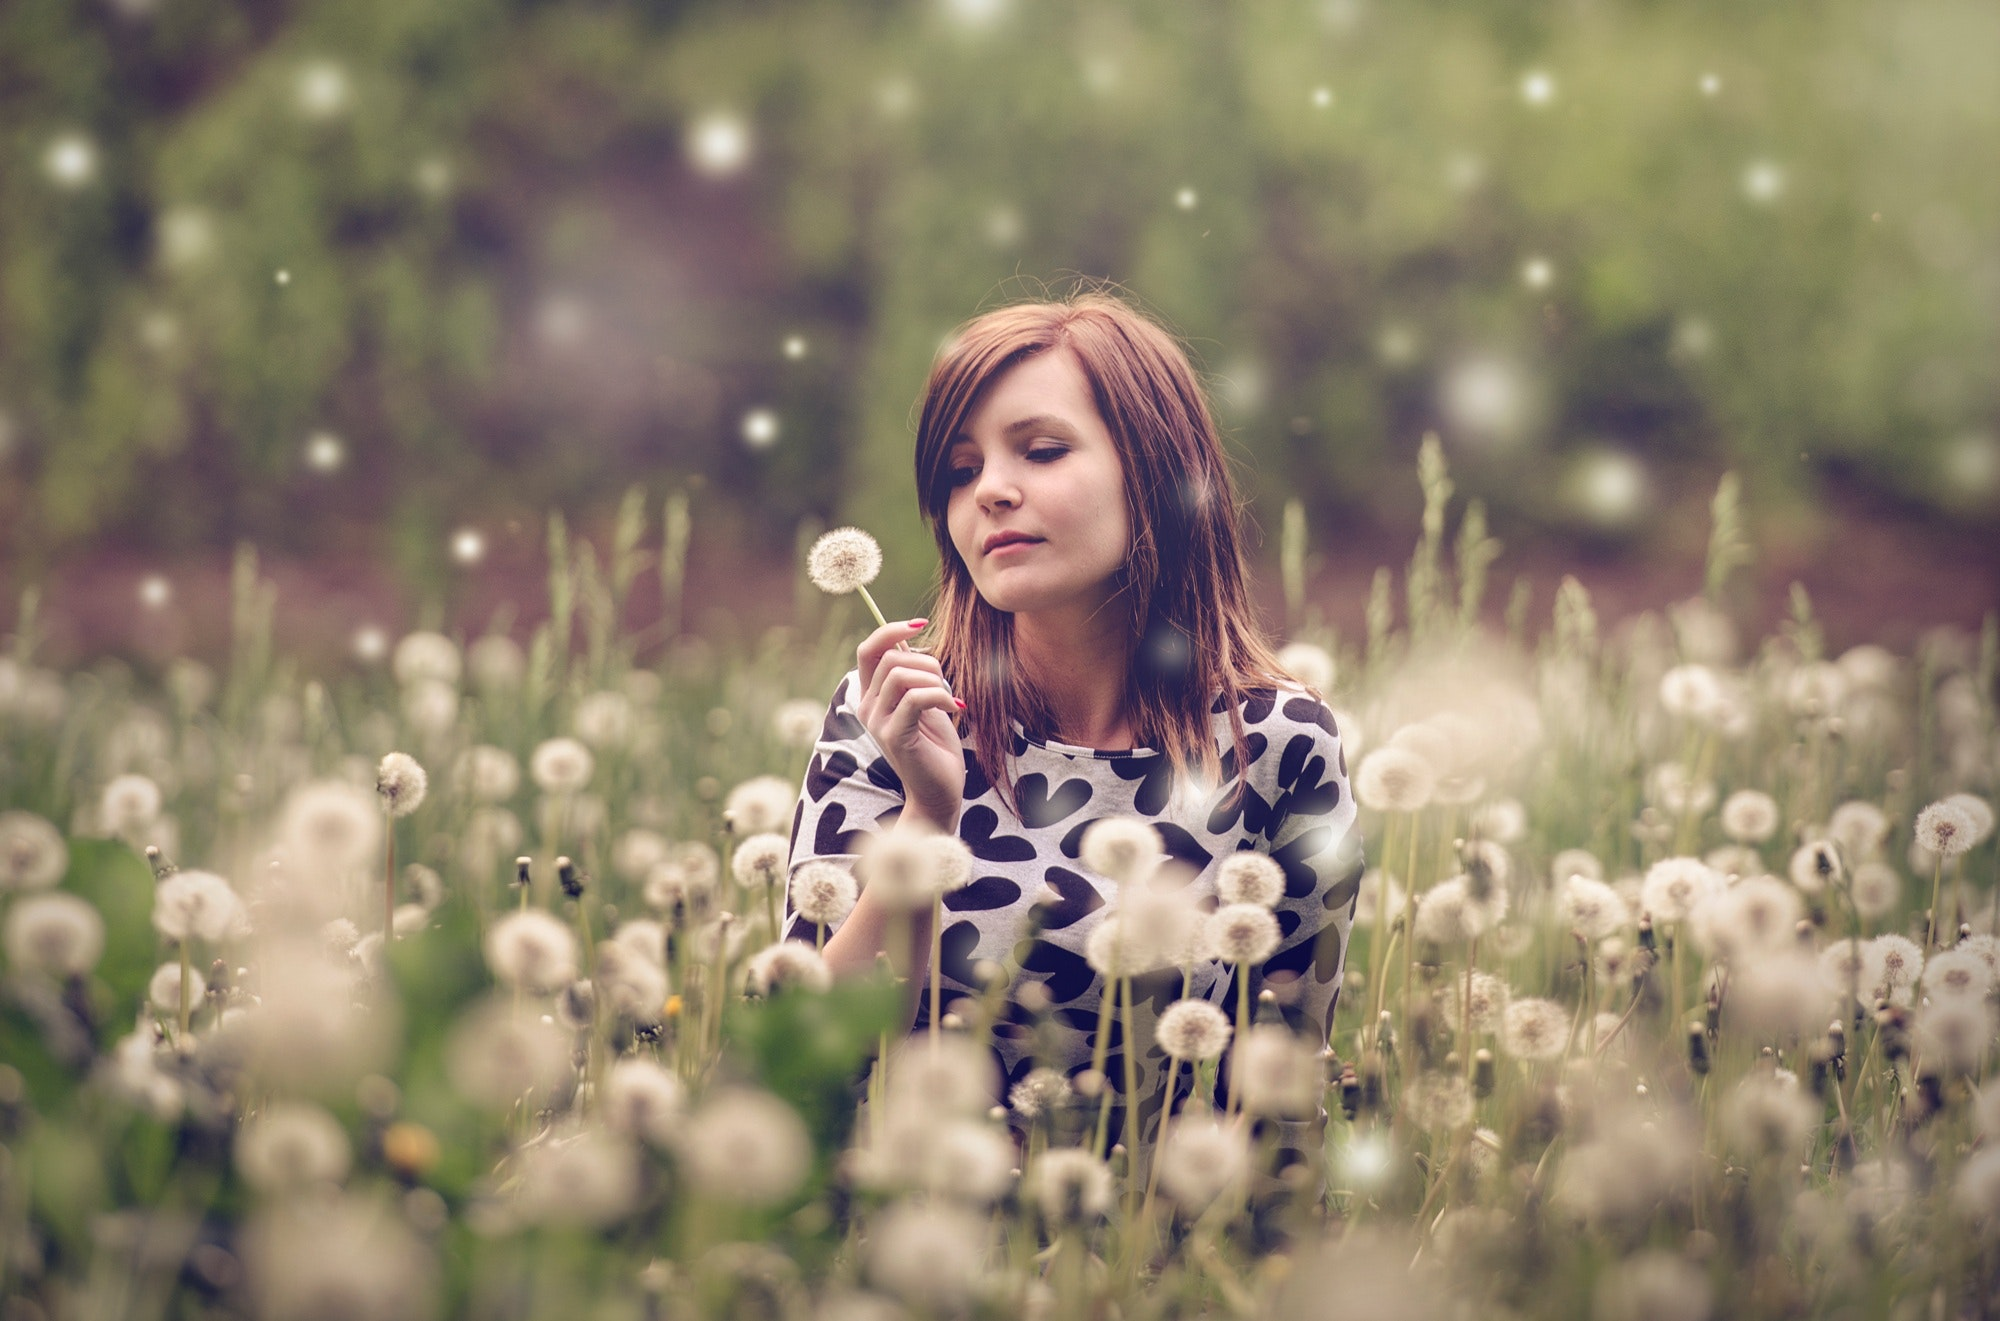 Woman sitting in a field of flowers photo